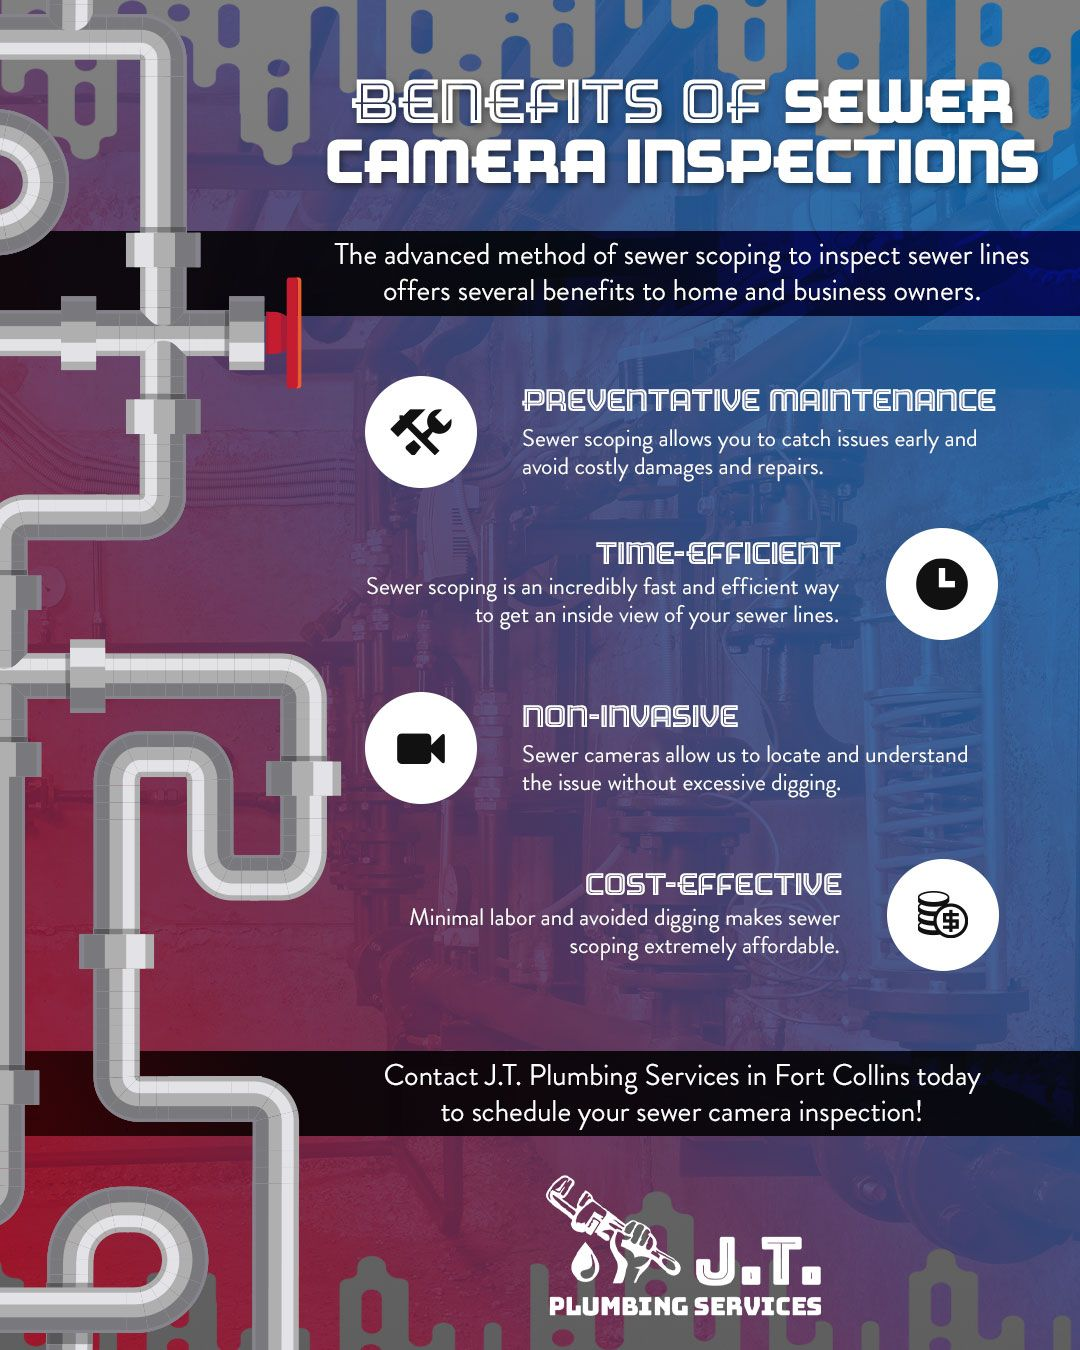 Benefits of Sewer Camera Inspections.jpg